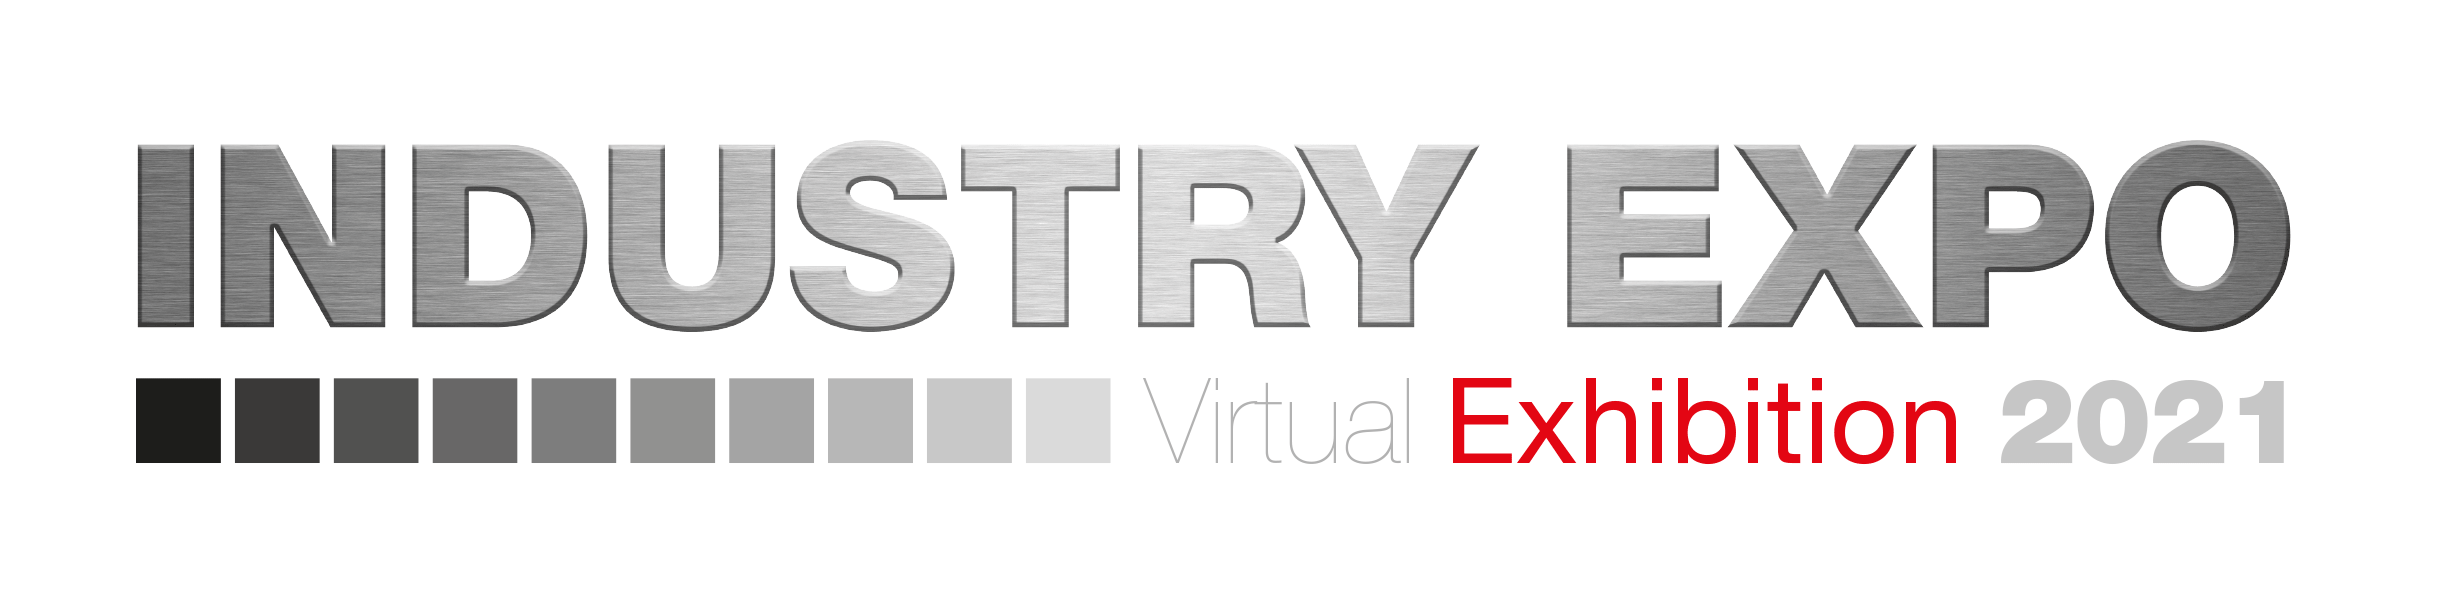 IndustryExpo Virtual Exhibition